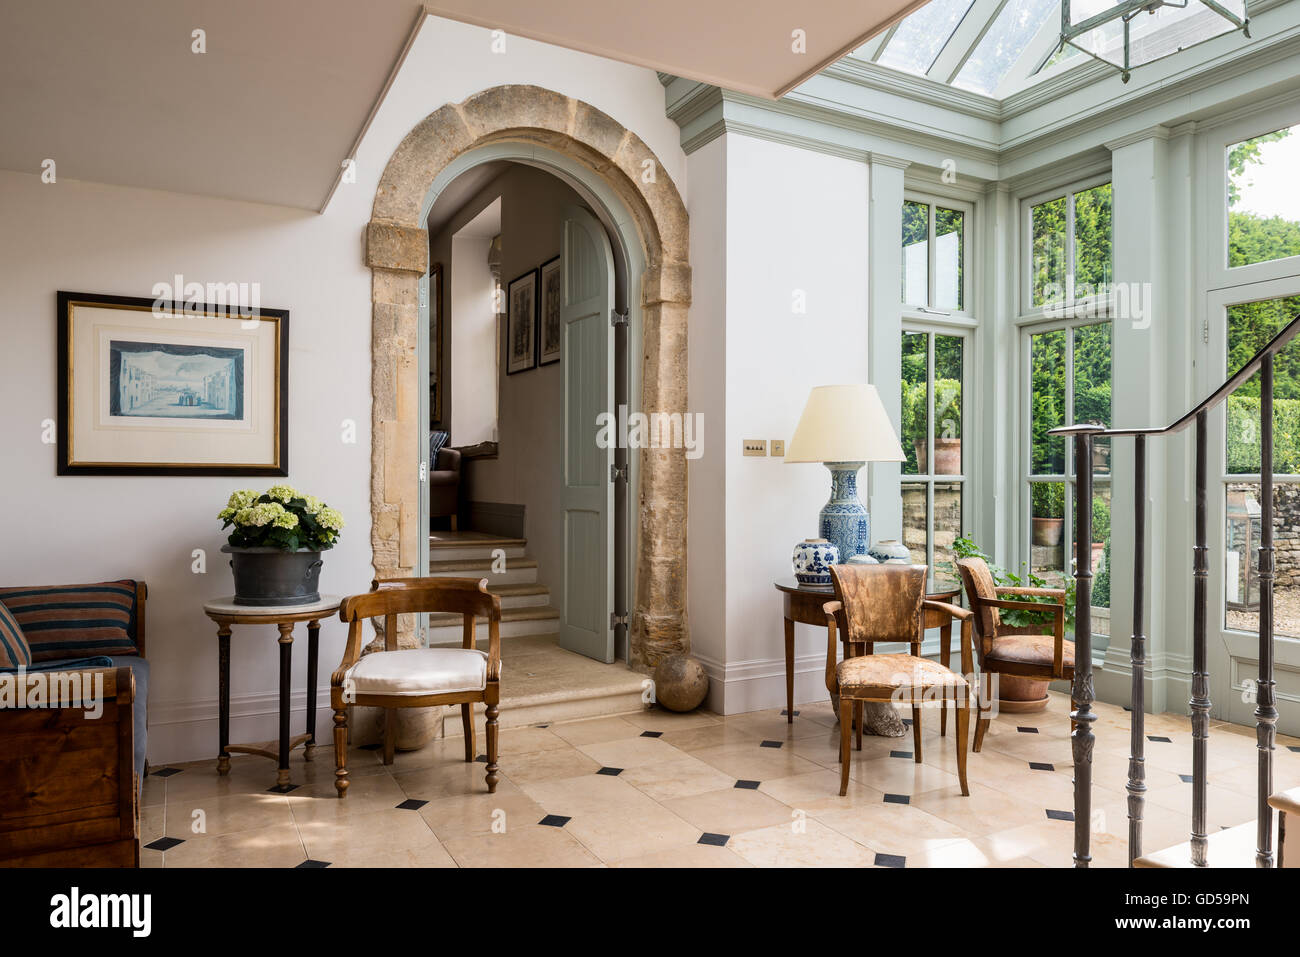 Old Leather Bridge Chairs And Round Table In Entrance Hall With Stone Arch  And Glass Ceiling